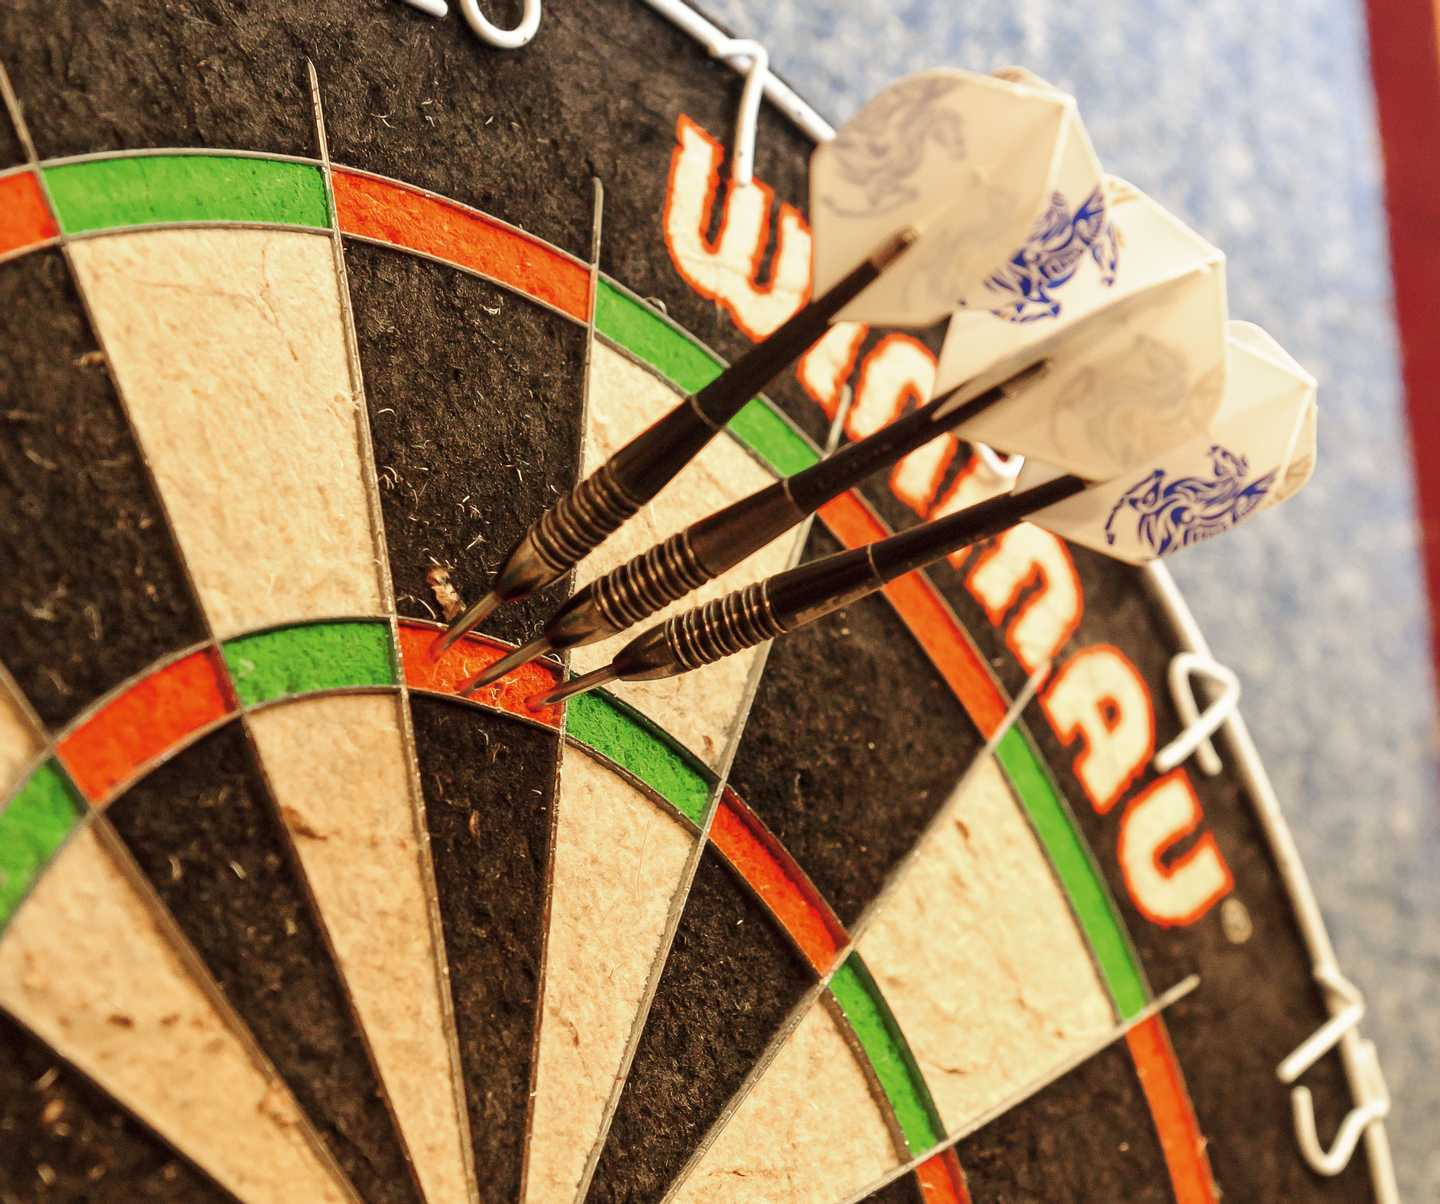 Three darts on a dart board